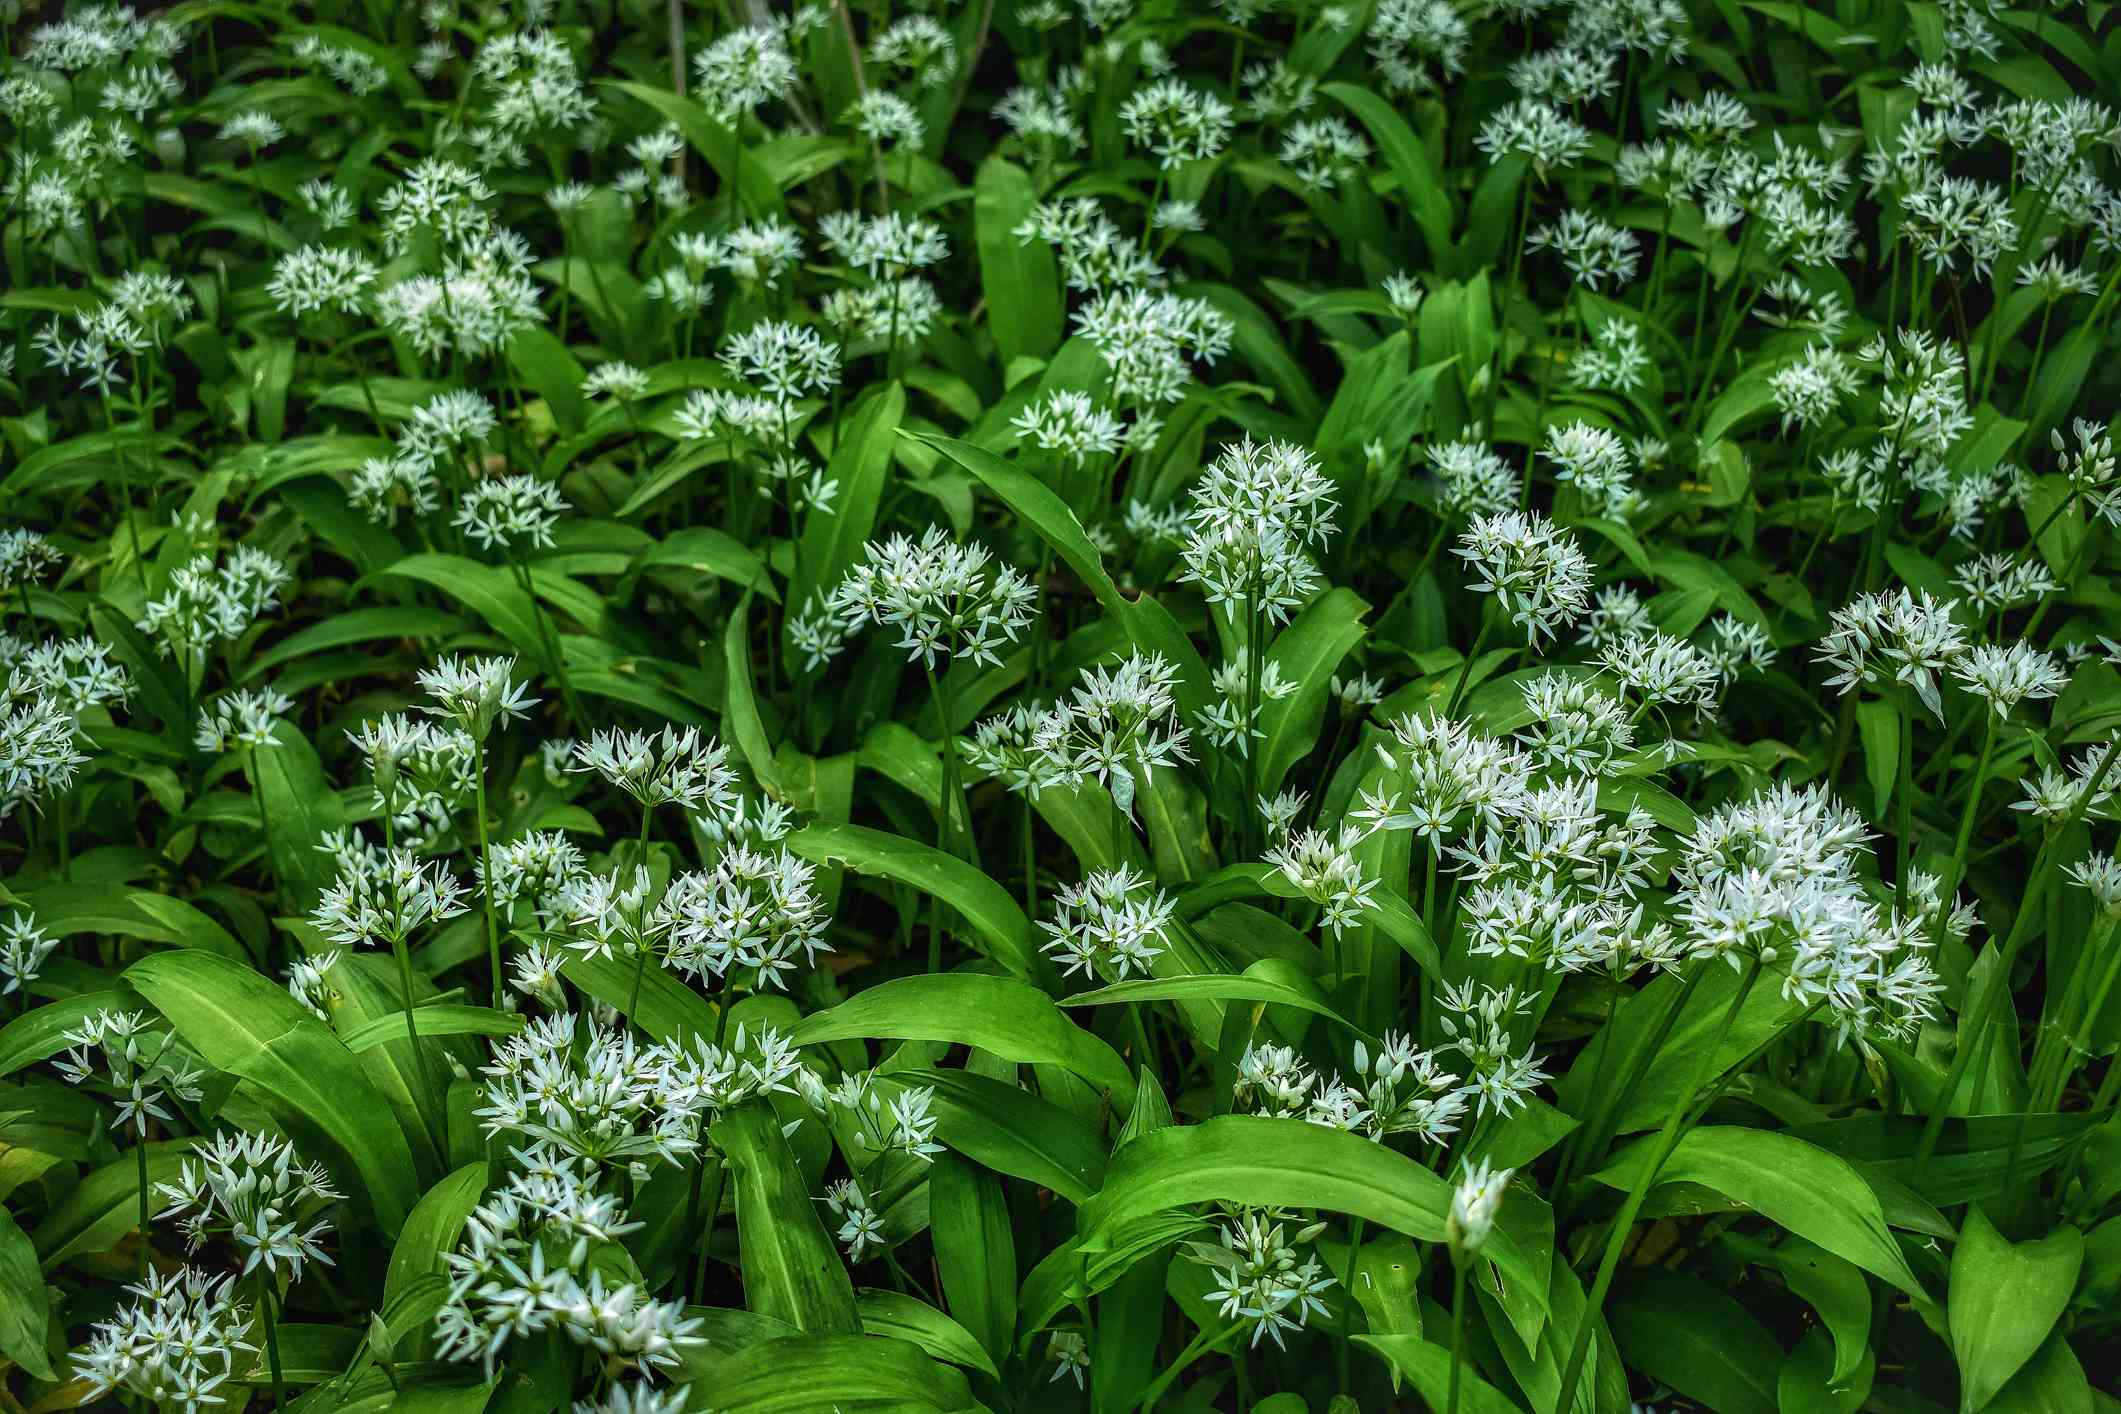 Field of wild garlic with signature white flowers in bloom